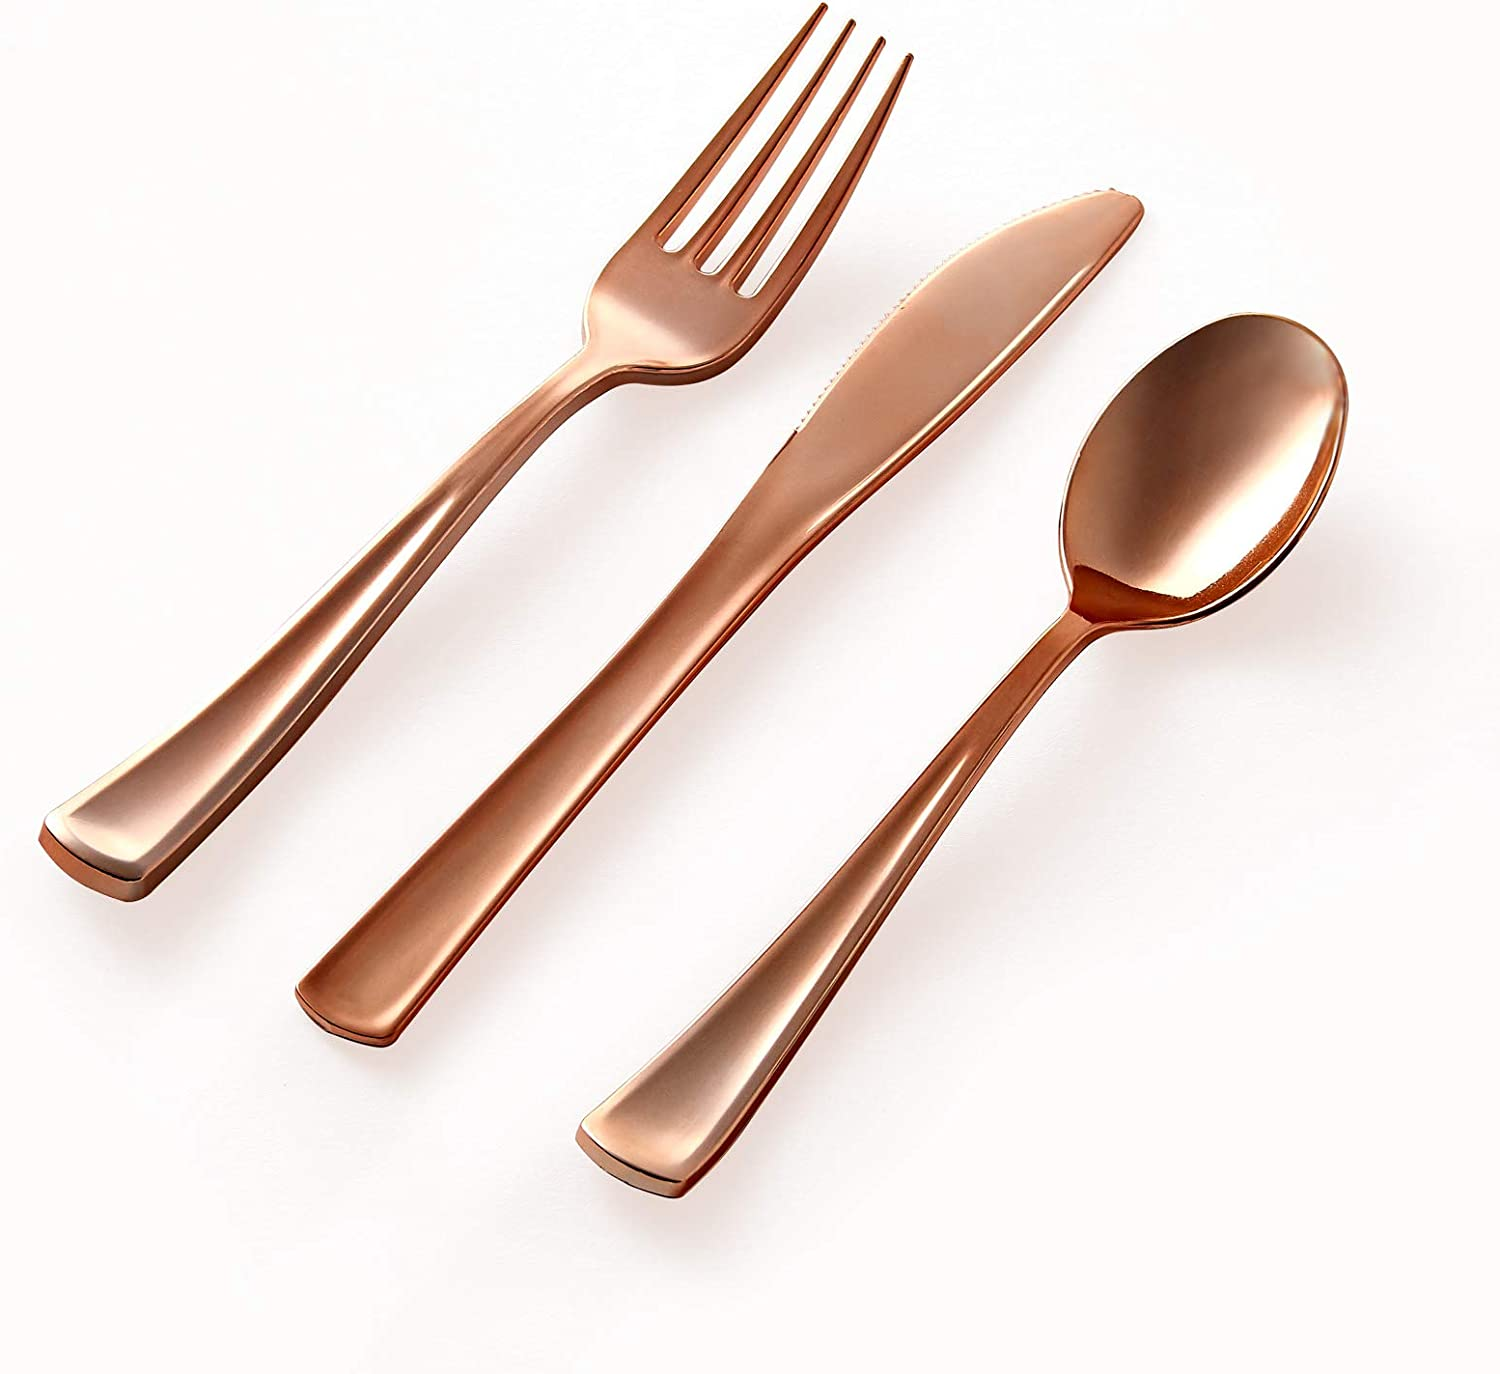 303pc Rose Gold Plastic Cutlery Set - Premium Disposable Flatware 100 Knives, 100 Forks, 100 Spoons and 3 pc Serving Set for Weddings or Party (303pc Cutlery, Rose Gold)